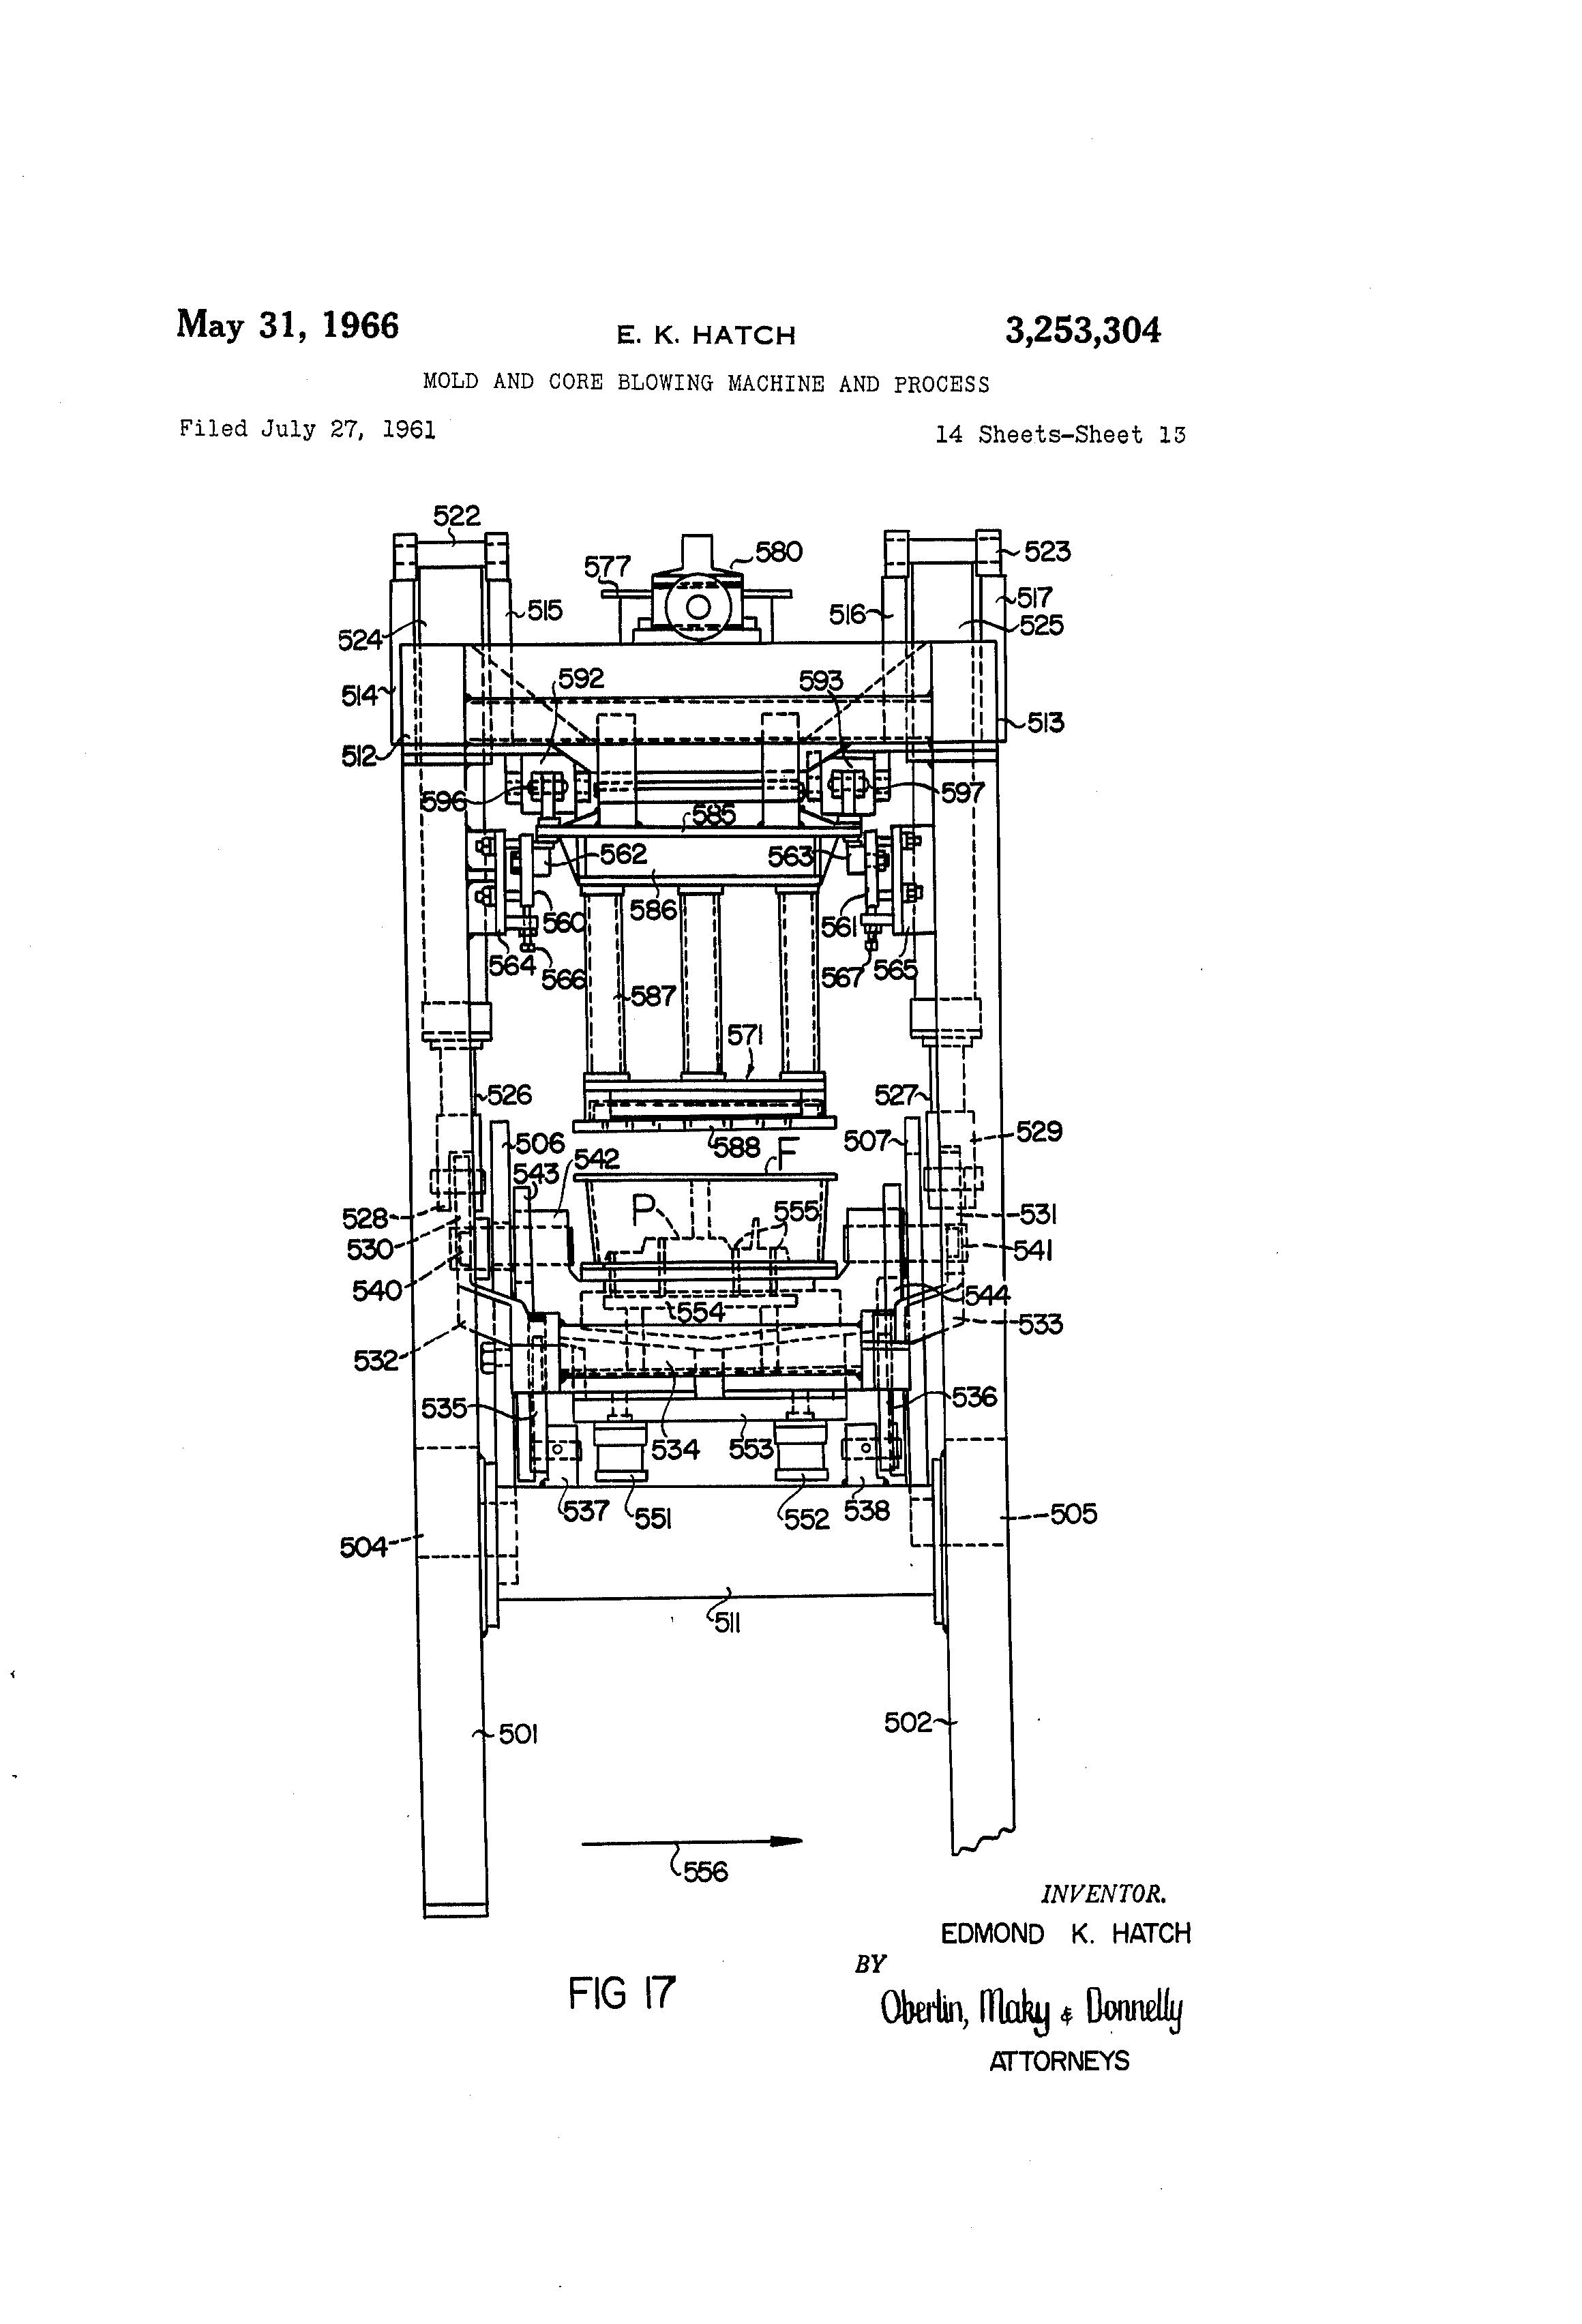 US3253304 12 patent us3253304 mold and core blowing machine and process  at creativeand.co